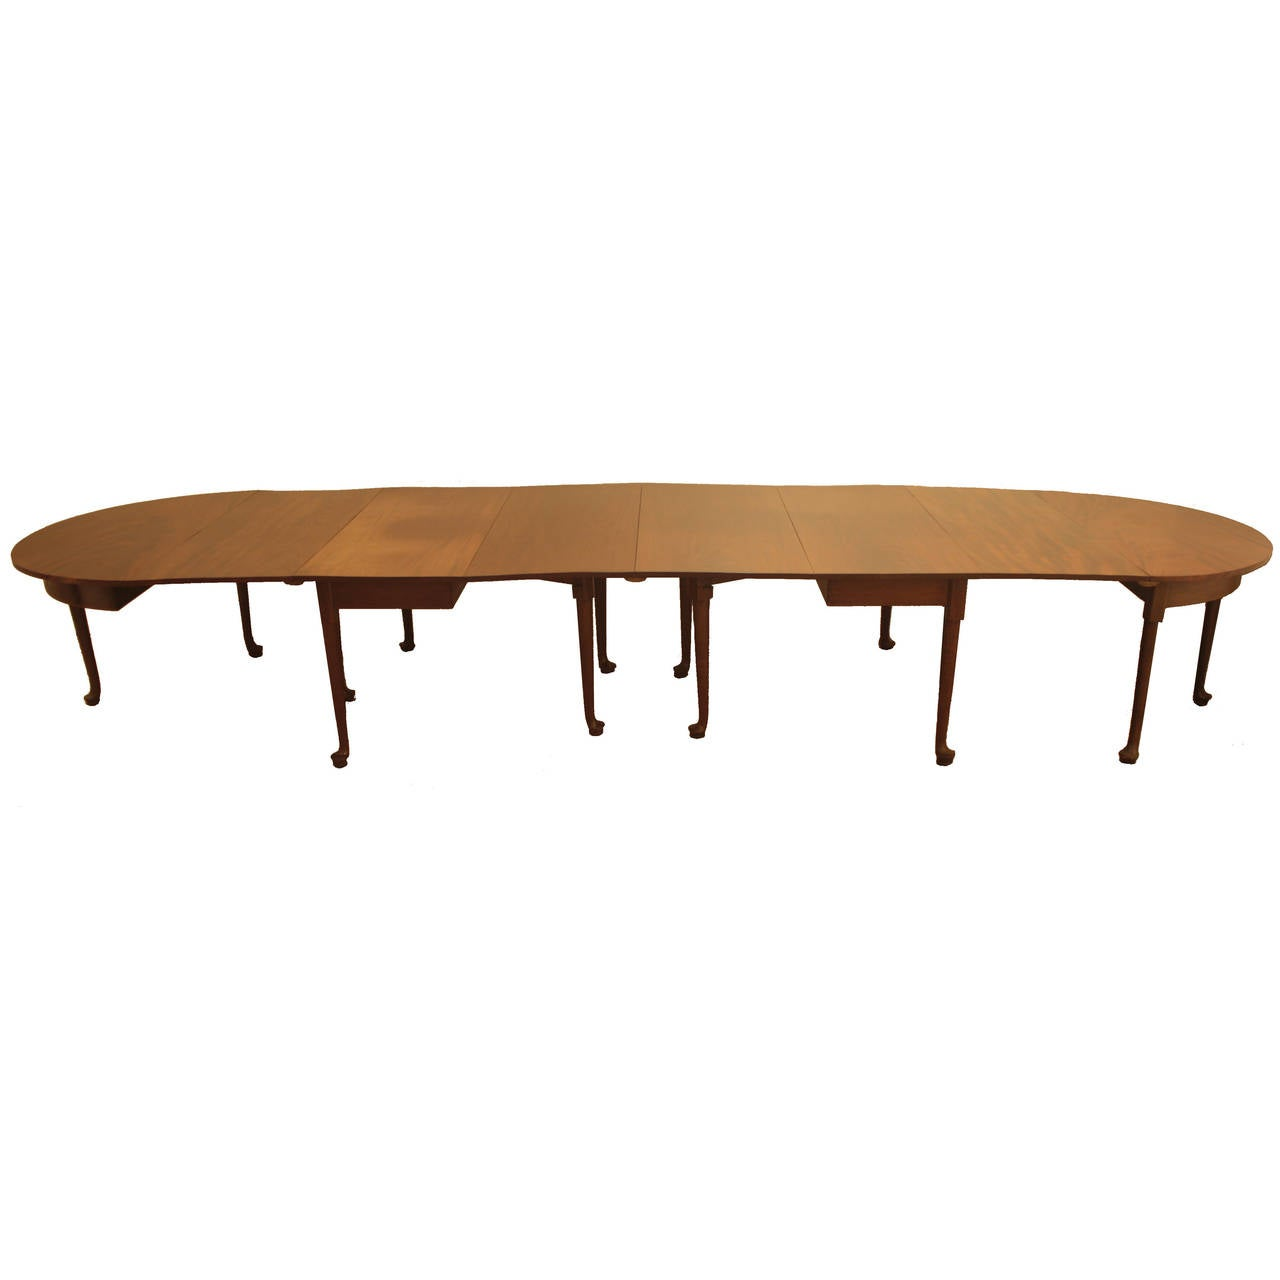 Period Queen Anne Dining Table At 1stdibs